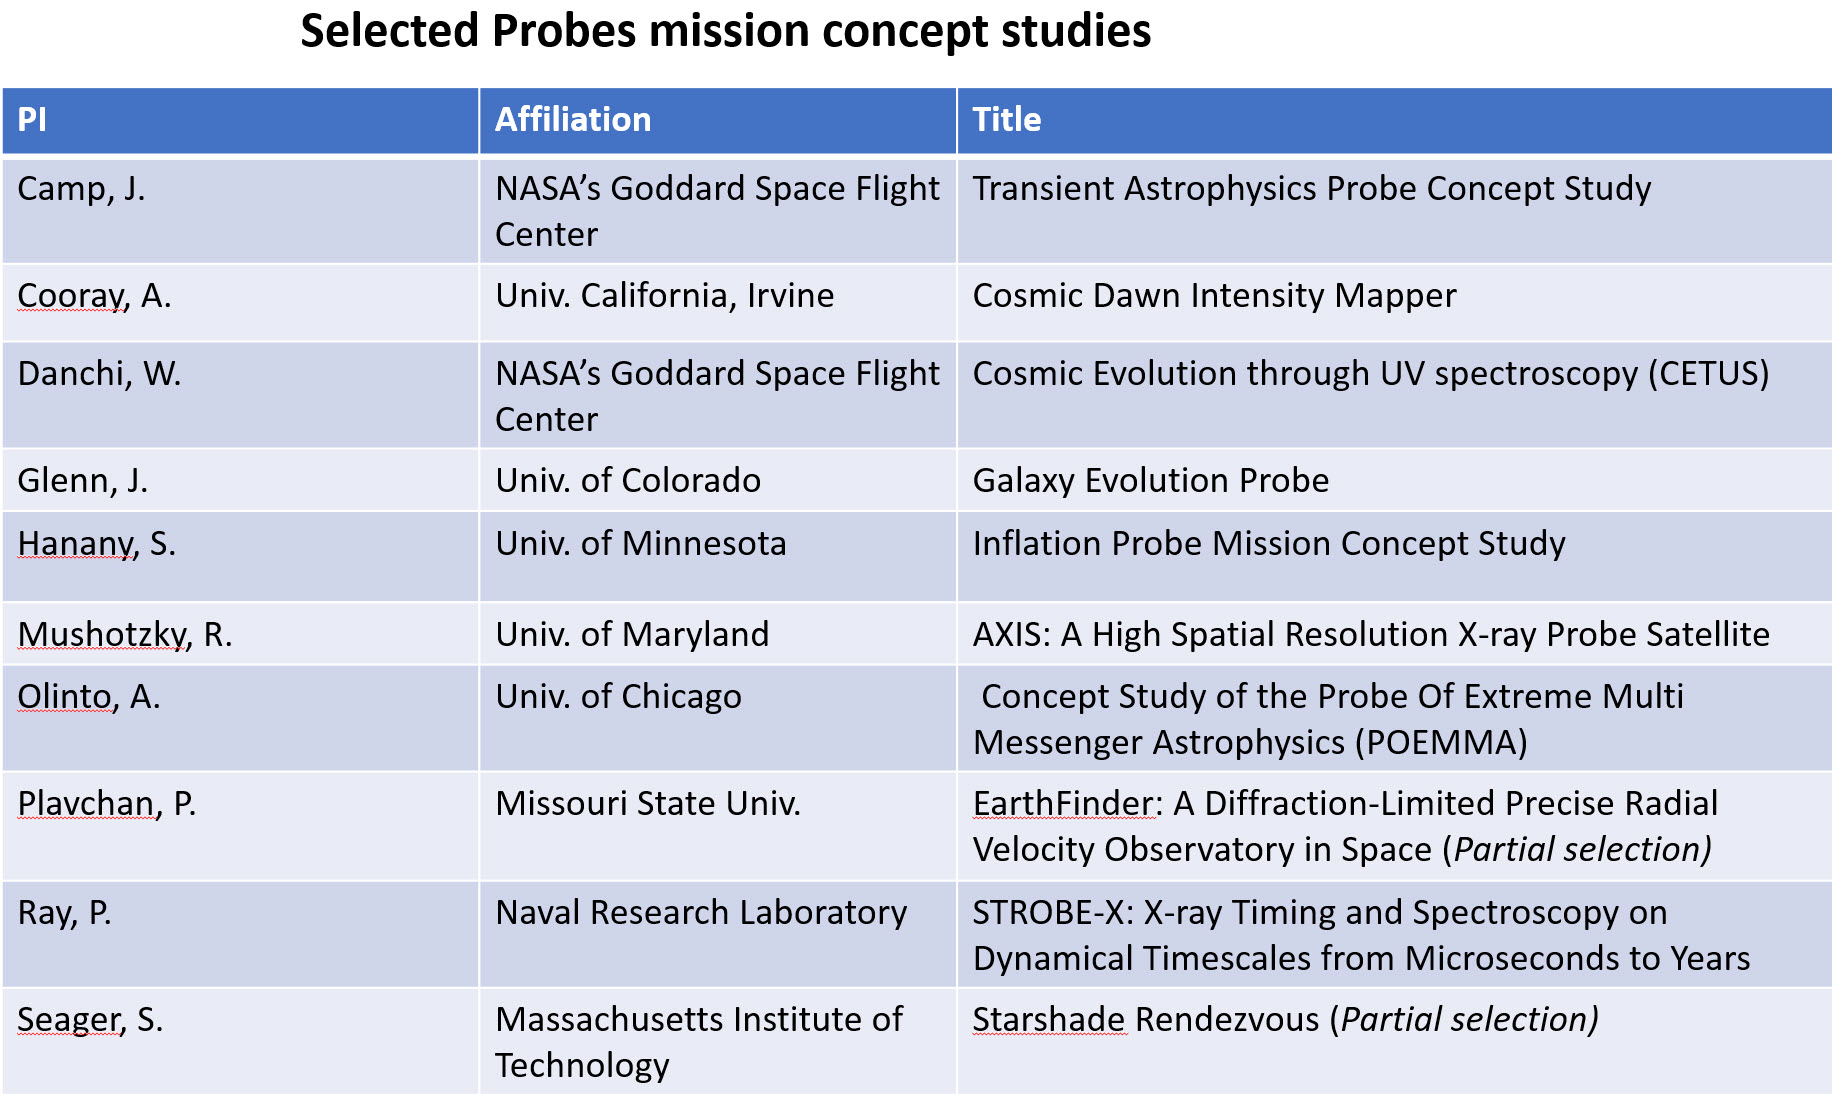 Selected Probe Mission Concept Studies